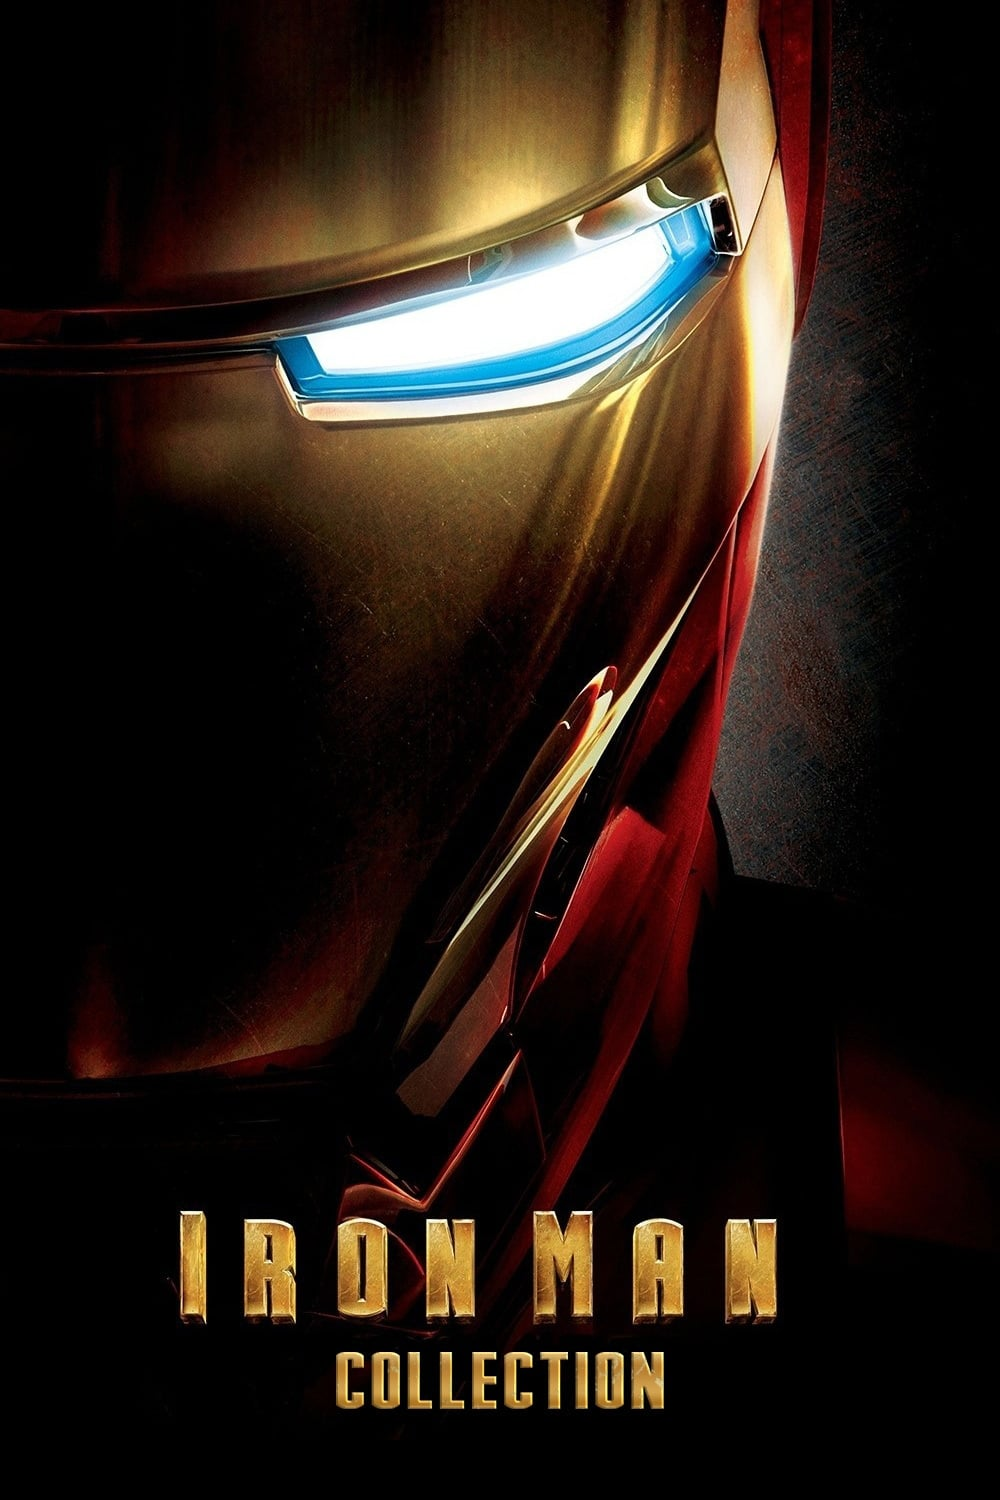 Iron Man Collection - Posters — The Movie Database (TMDb)